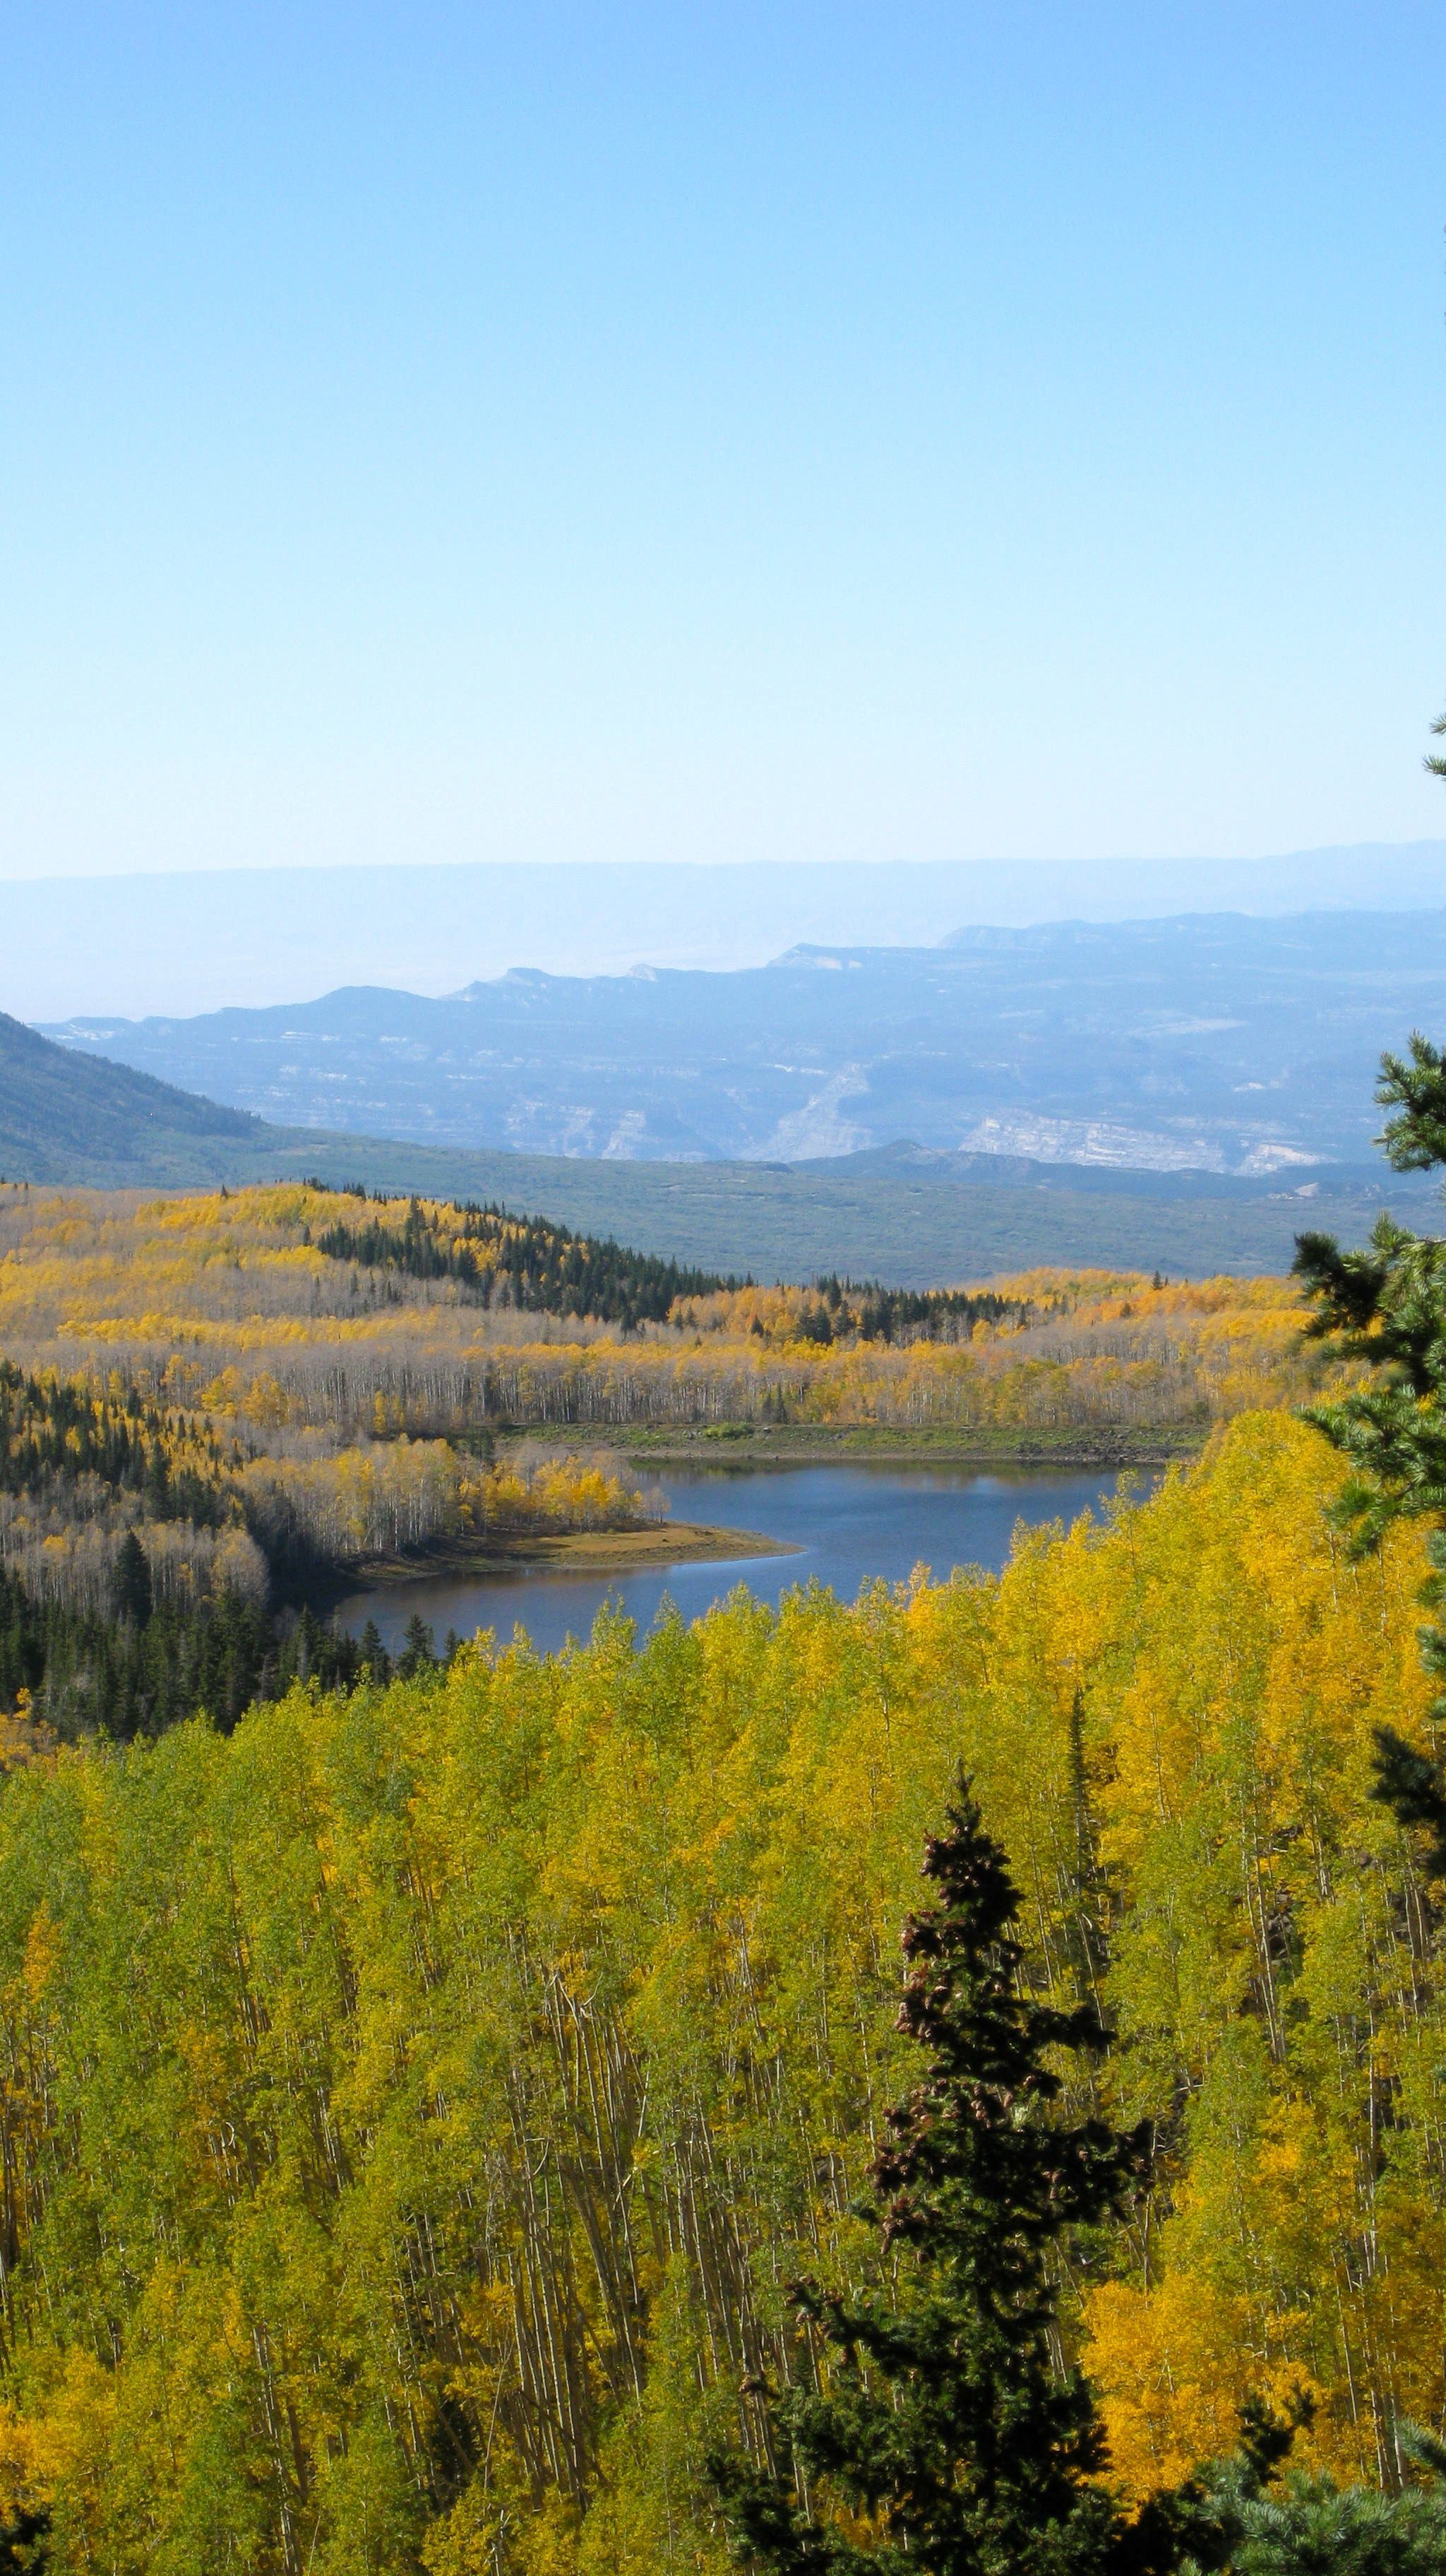 The Grand Mesa's mountain lake is perfect for trout fishing. Photo courtesy of the Colorado Tourism Office.